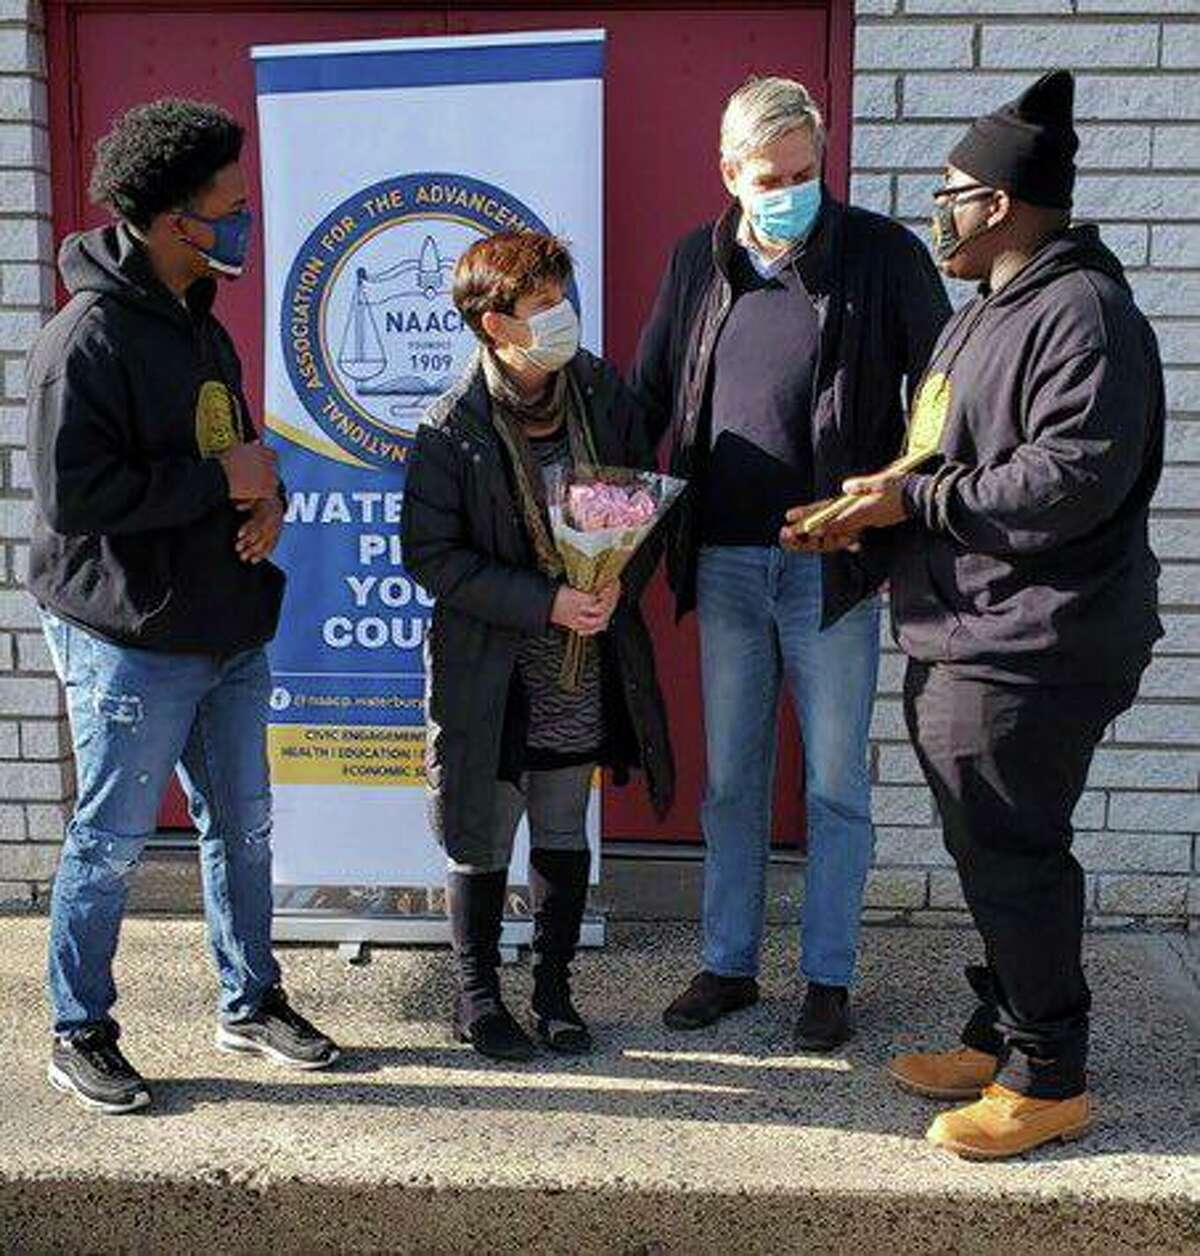 Amy and Bob Stefanowski, at center, received an award from the Waterbury NAACP Youth Corps on Sept. 9, 2021, for their volunteer work buying and distributing masks in the spring of 2020.